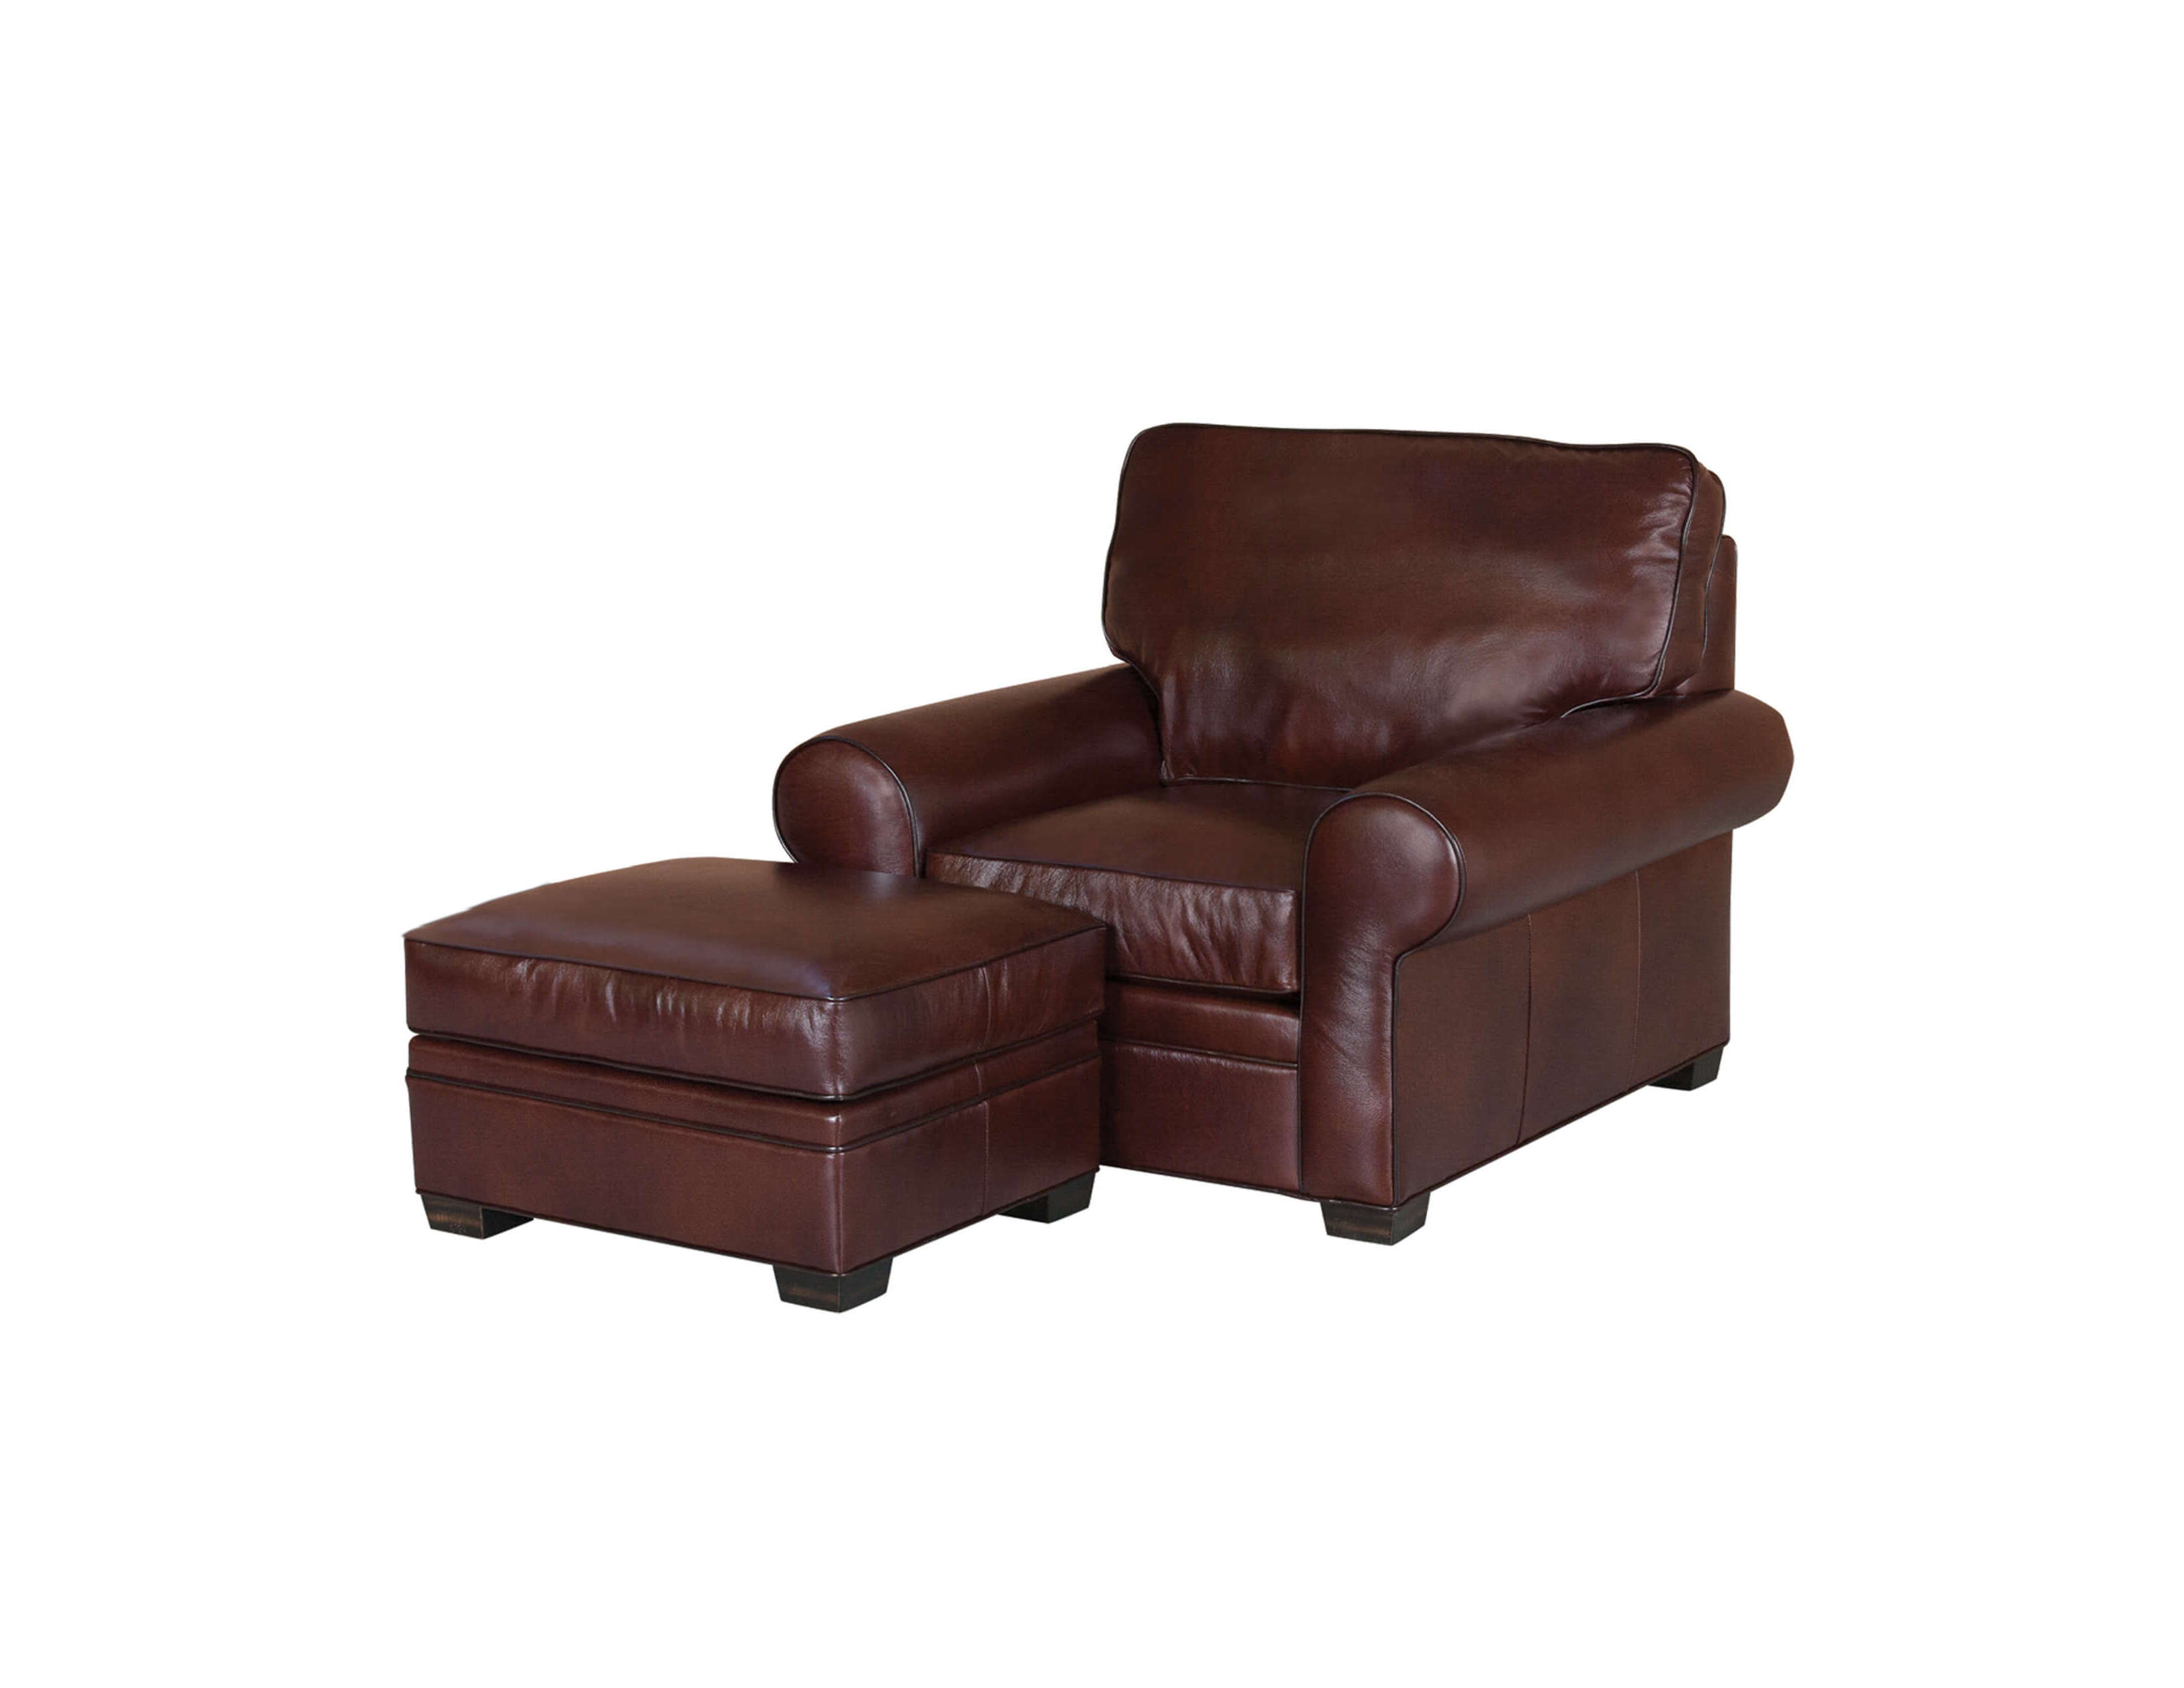 library burgundy pics john of distressed vintage stunning and club antiques george chair sxs carroll iv trends ideas pair for incredible pic a leather